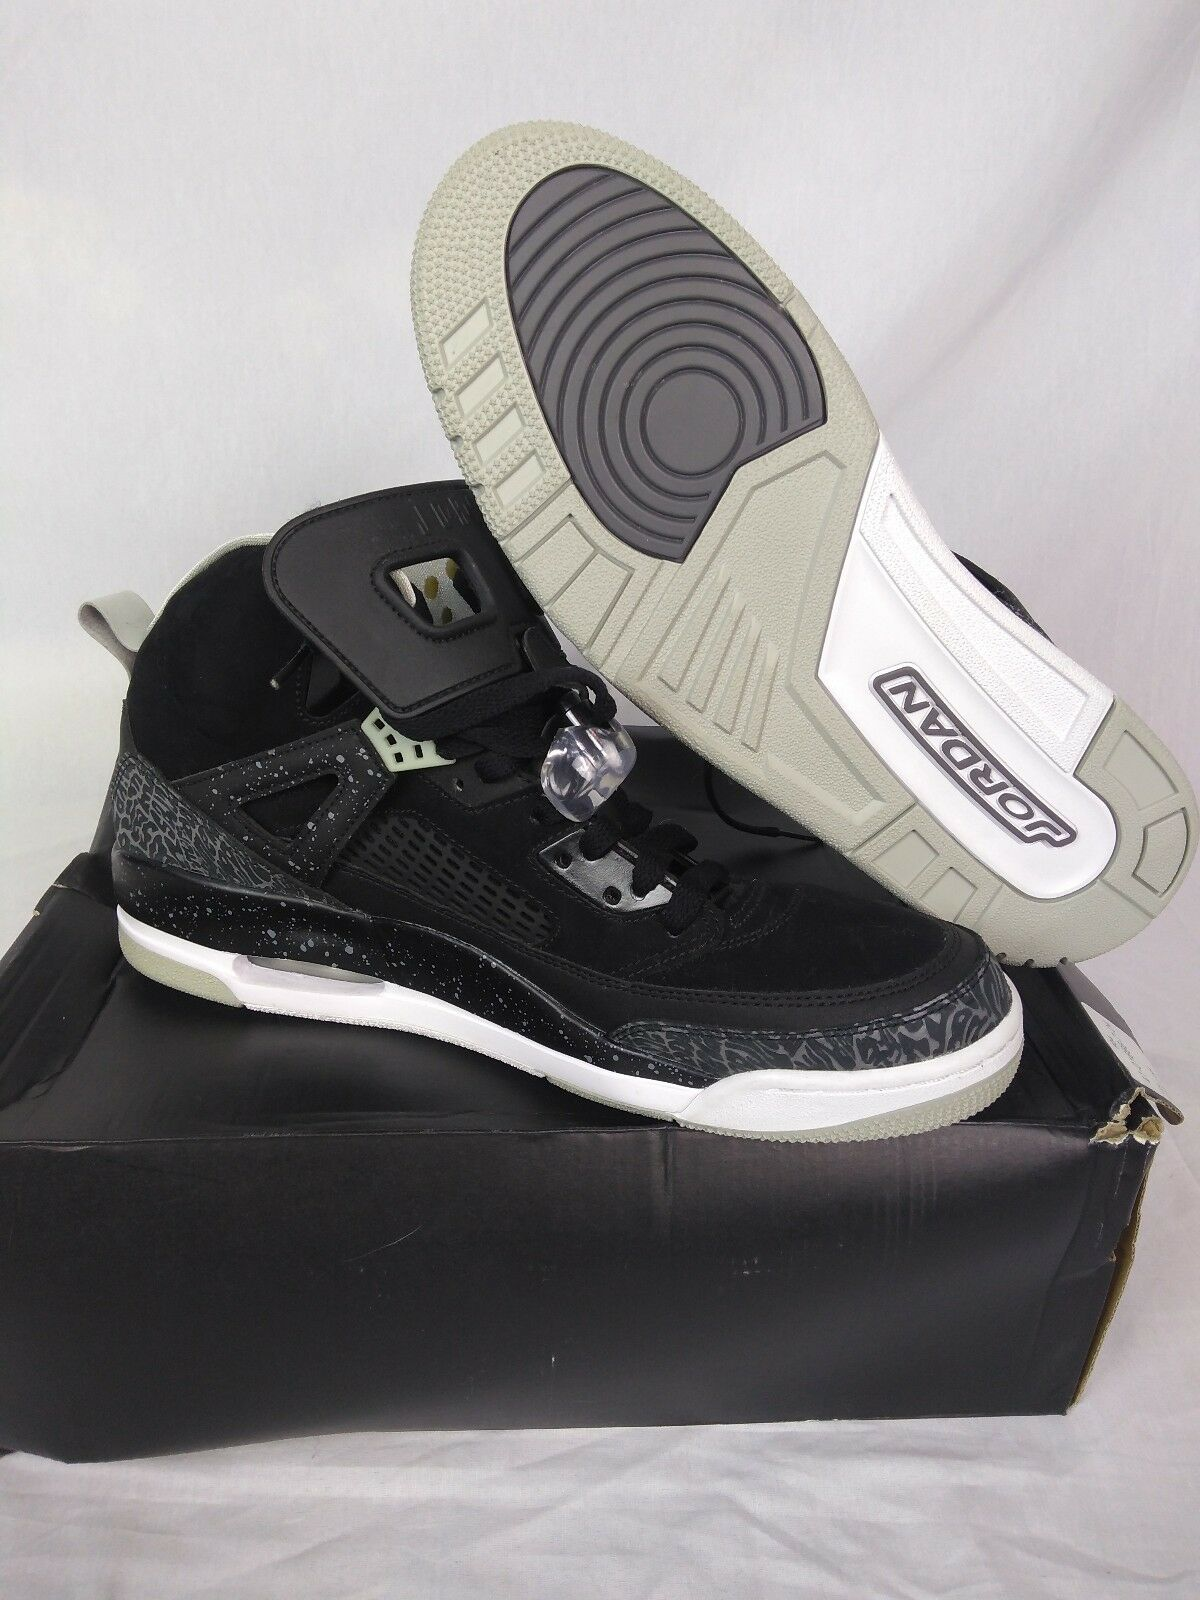 NEW NIKE AIR JORDAN SPIZIKE BLACK COOL GREY MIST WHITE SZ 12 OREO 315371-004